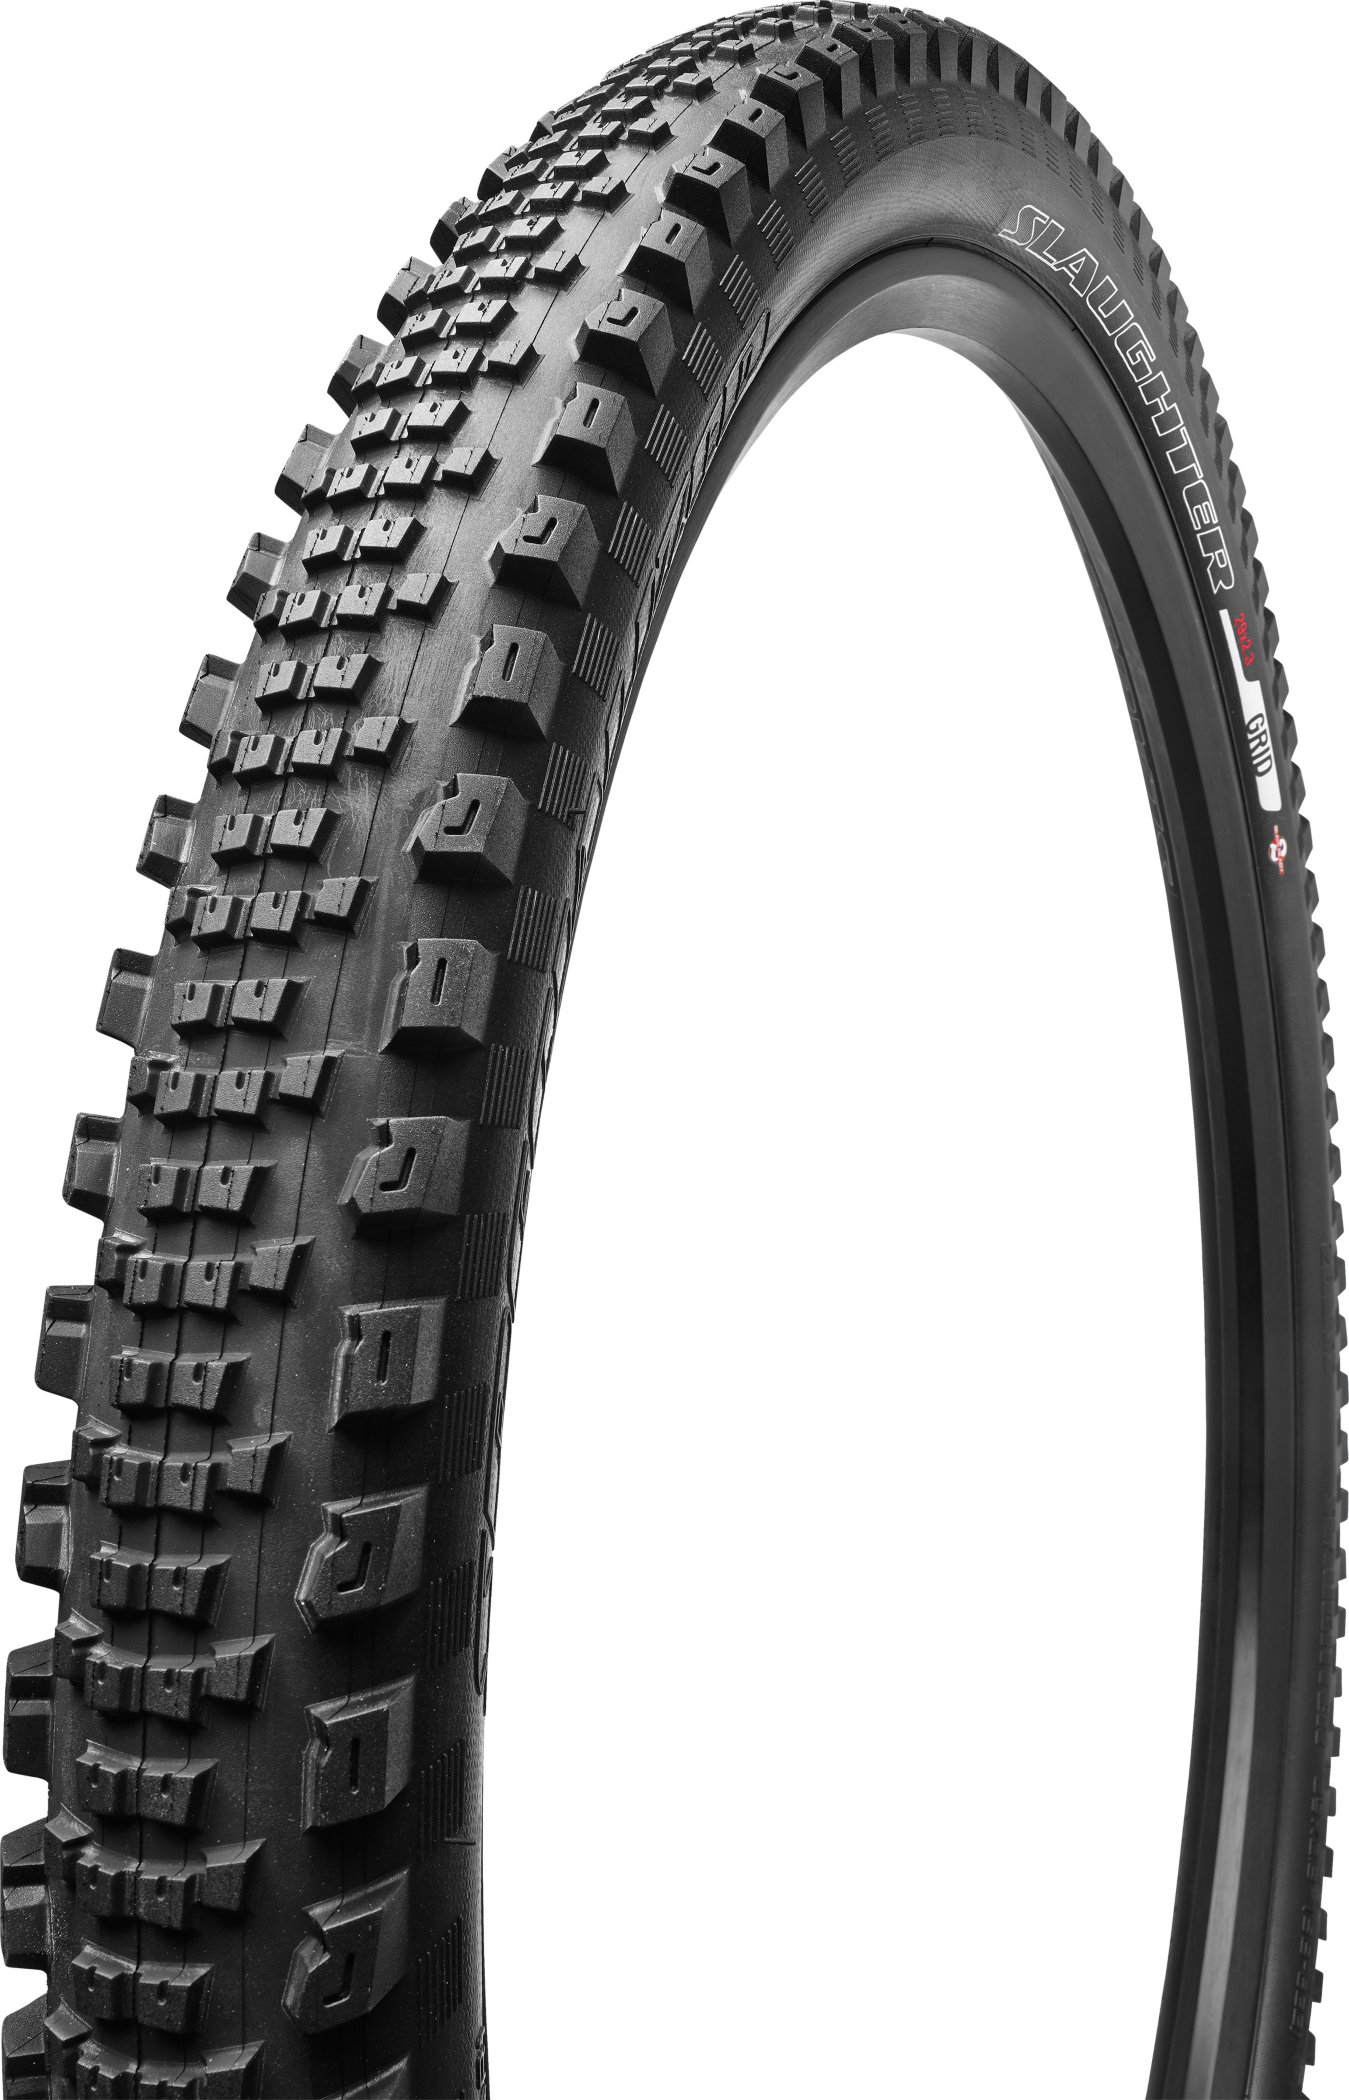 SPECIALIZED SLAUGHTER CONTROL 2BR TIRE 29X2.3 - Bike Zone